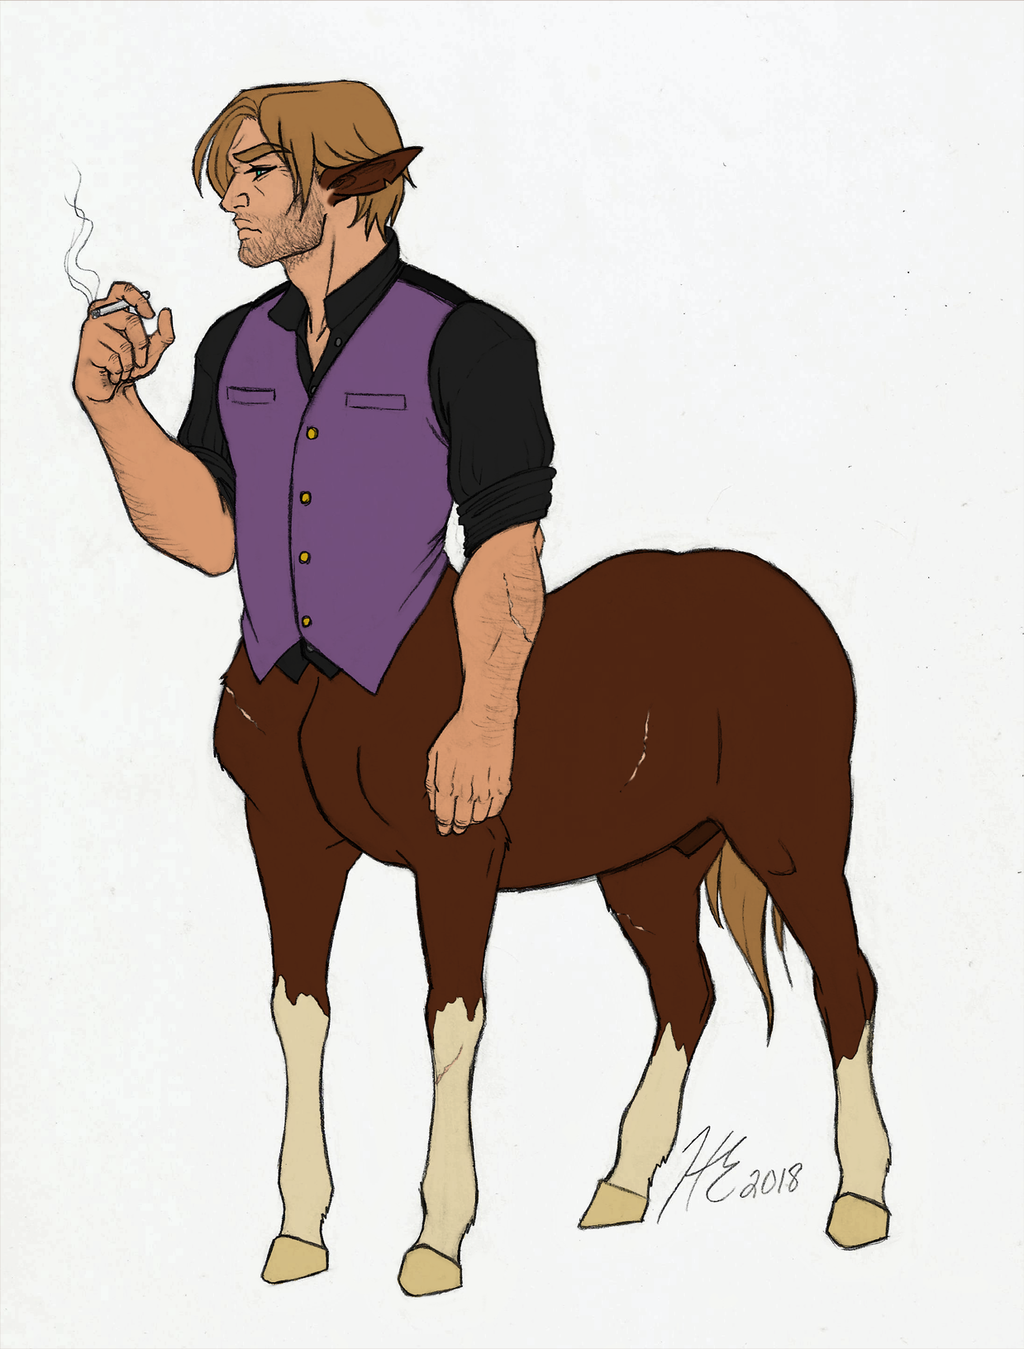 Most recent image: Centaur Arthur Morgan